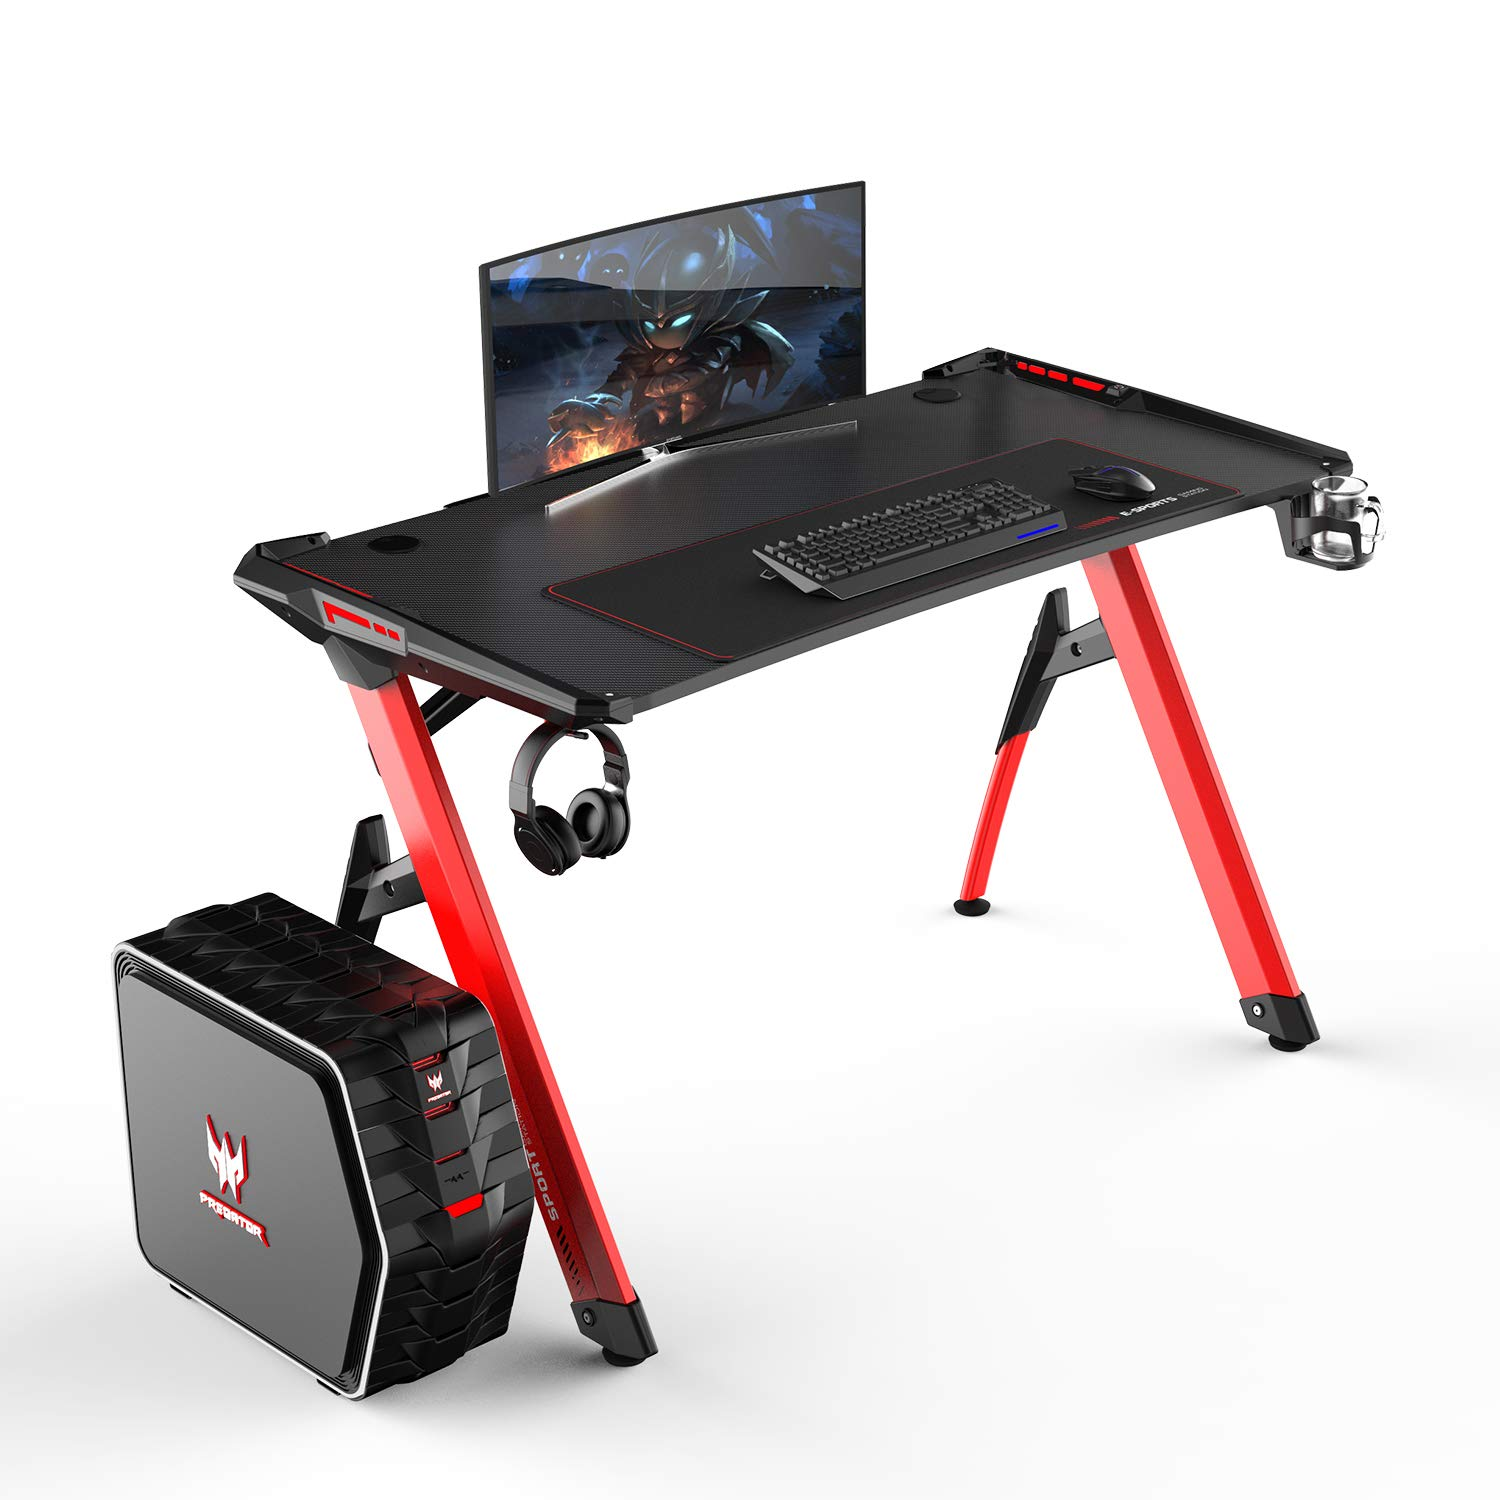 soges Ergonomic Gaming Desk R3 Pro, 47 inches Modern Computer Desk Gamer Tables with Cup Holder, RGB LED Lights and Extra Large Mouse Pad, Red, R3-Pro-RD